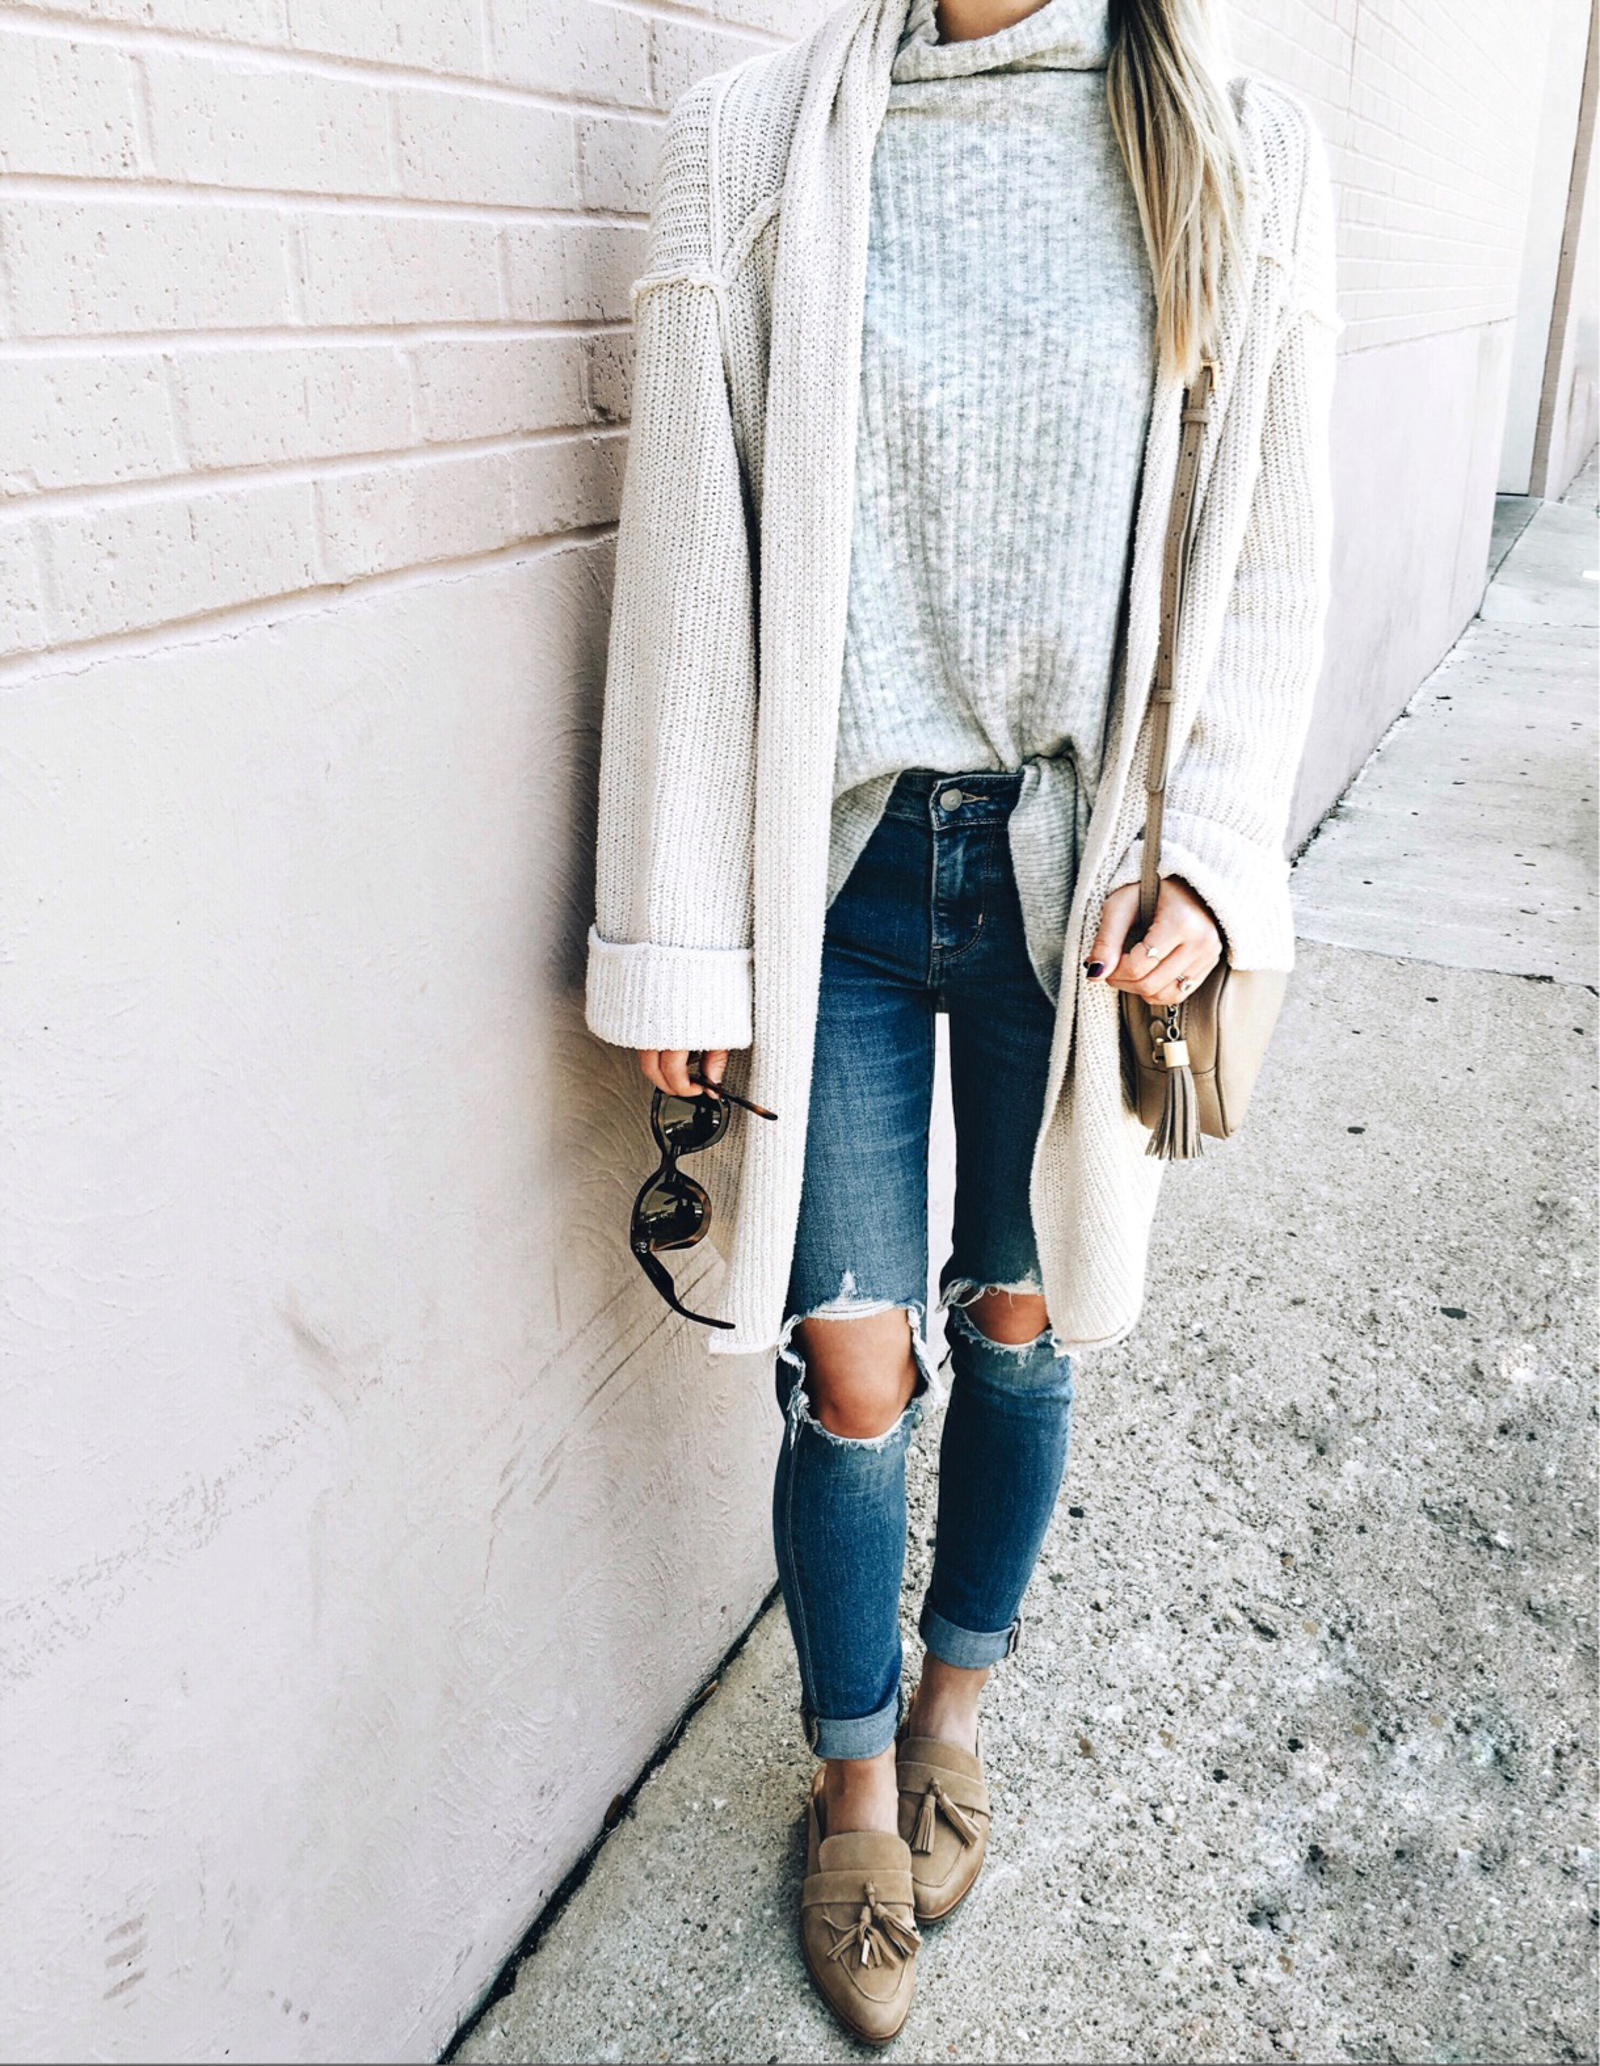 livvyland-blog-olivia-watson-instagram-roundup-austin-texas-cozy-winter-outfit-1